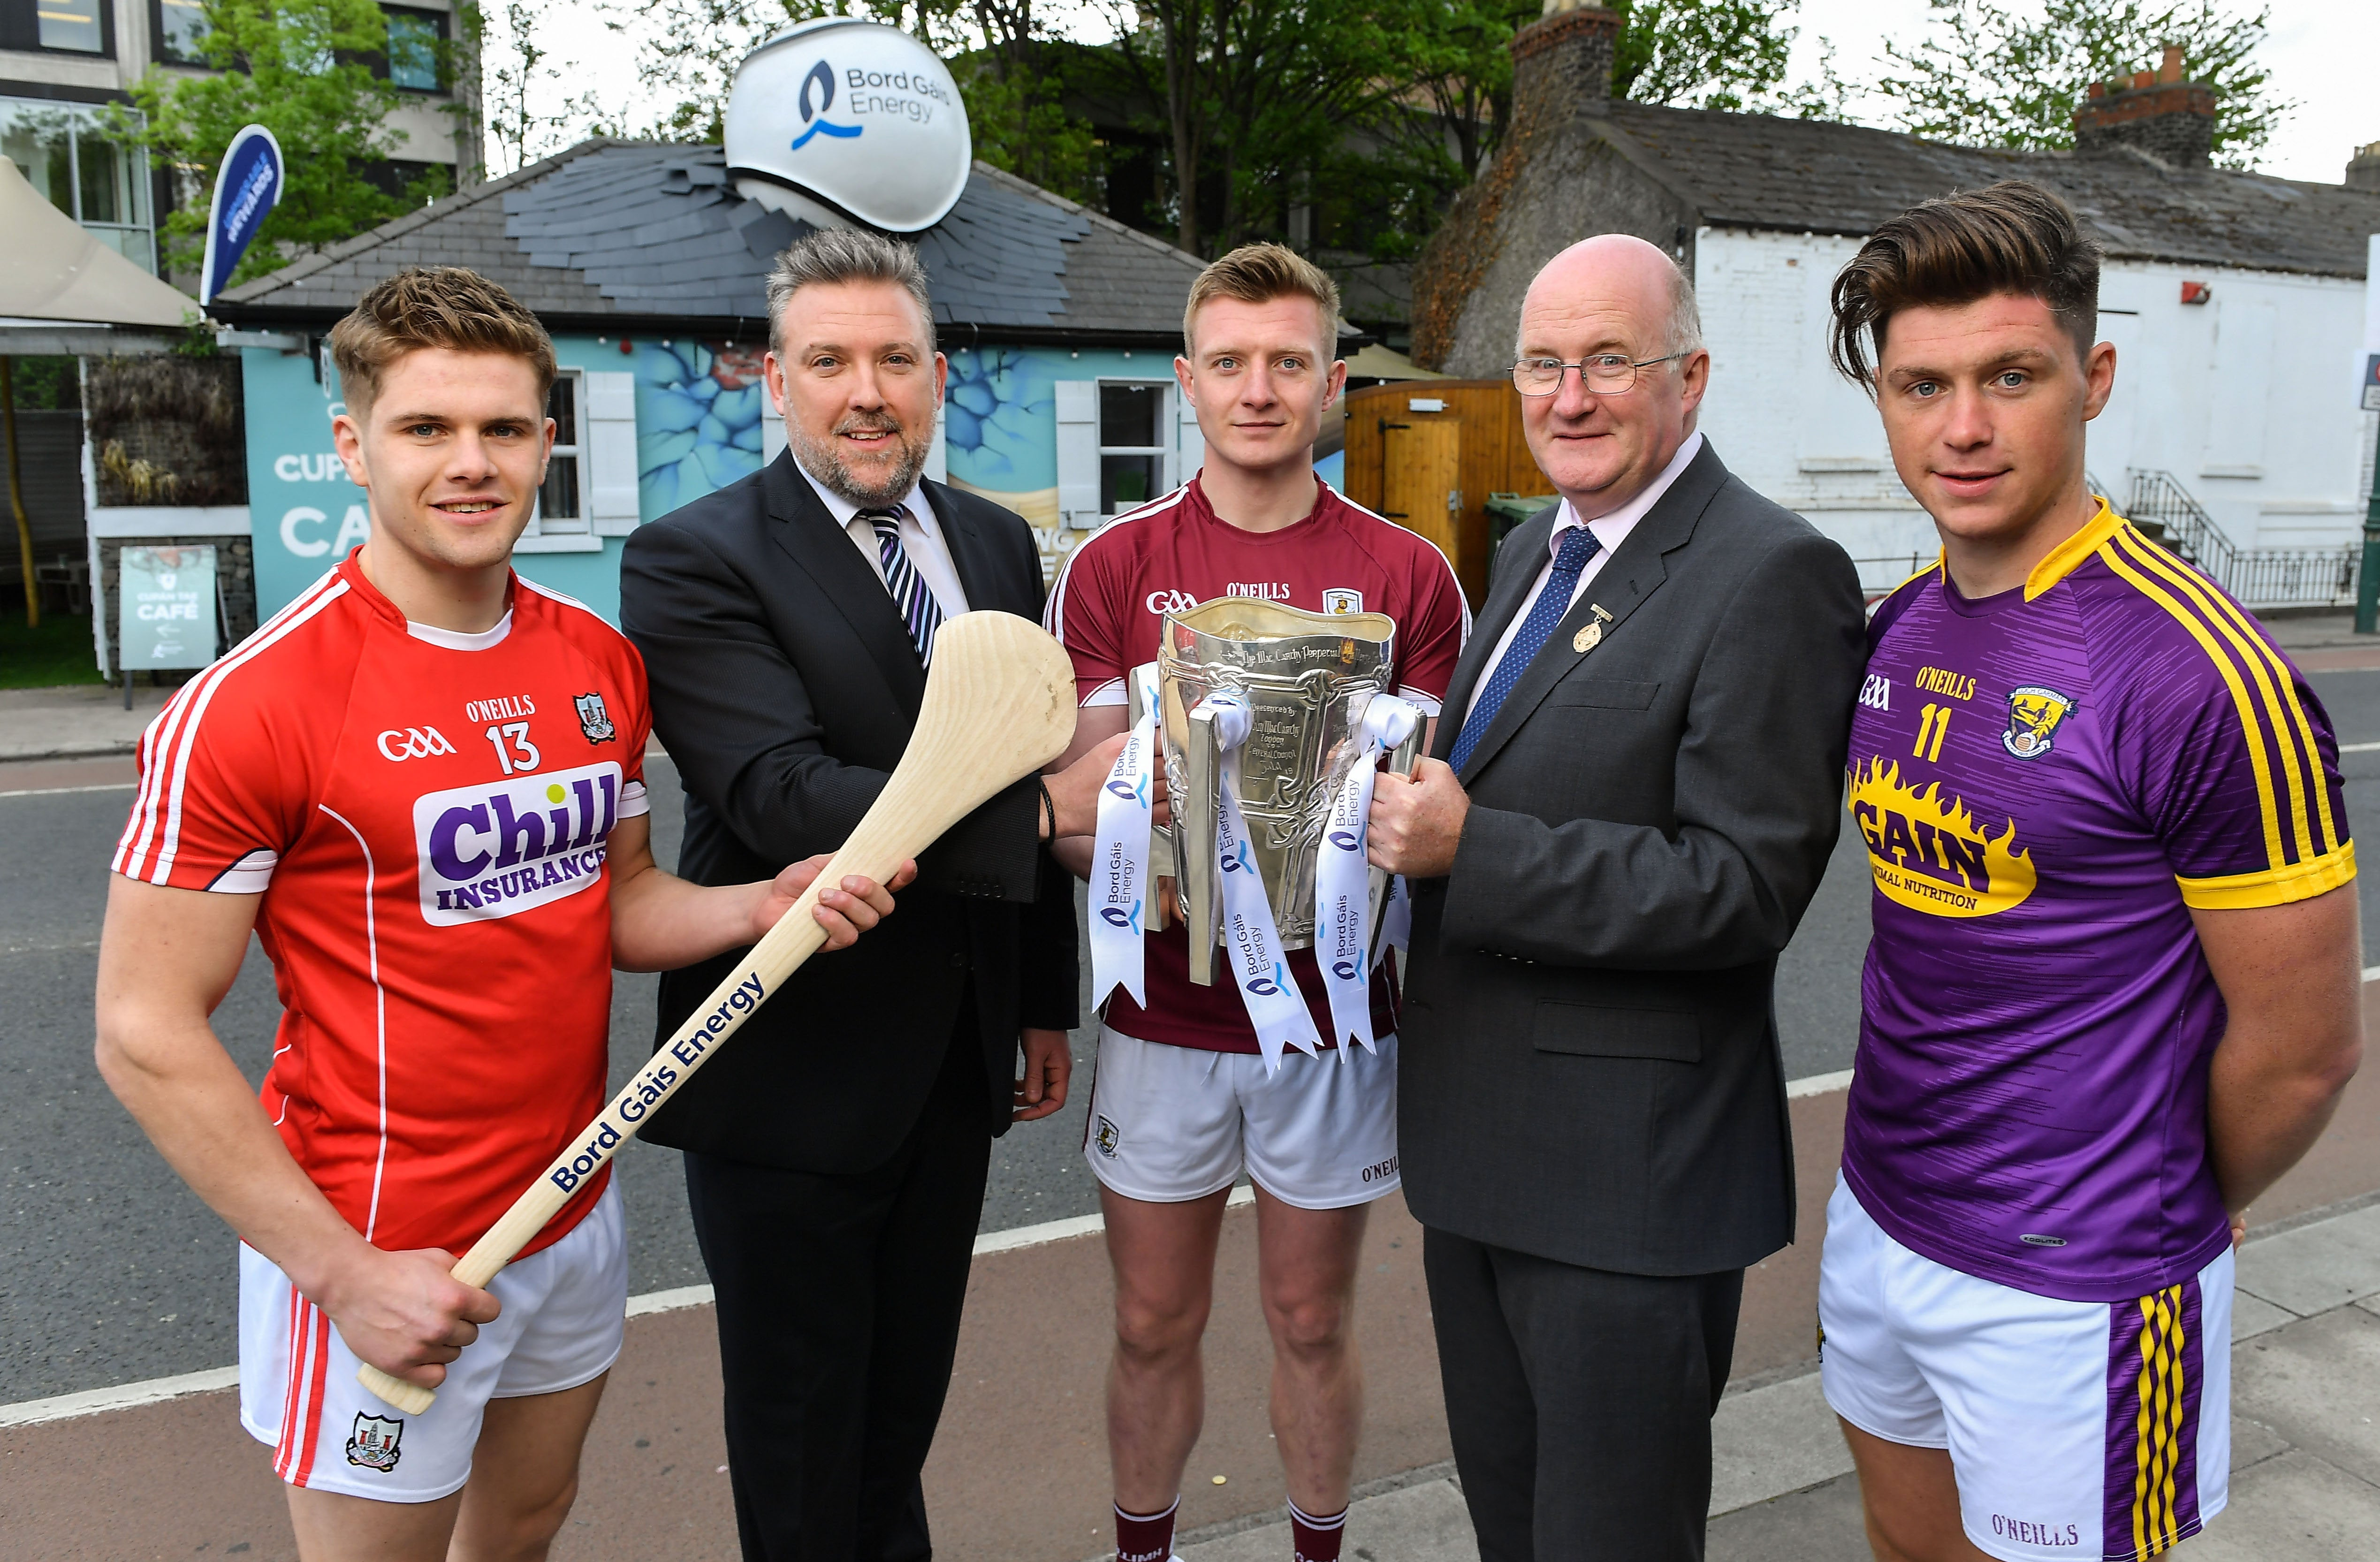 5 men standing outside a cafe: 3 county hurlers, one holding a hurl, one holding a trophy; 2 men in suits.